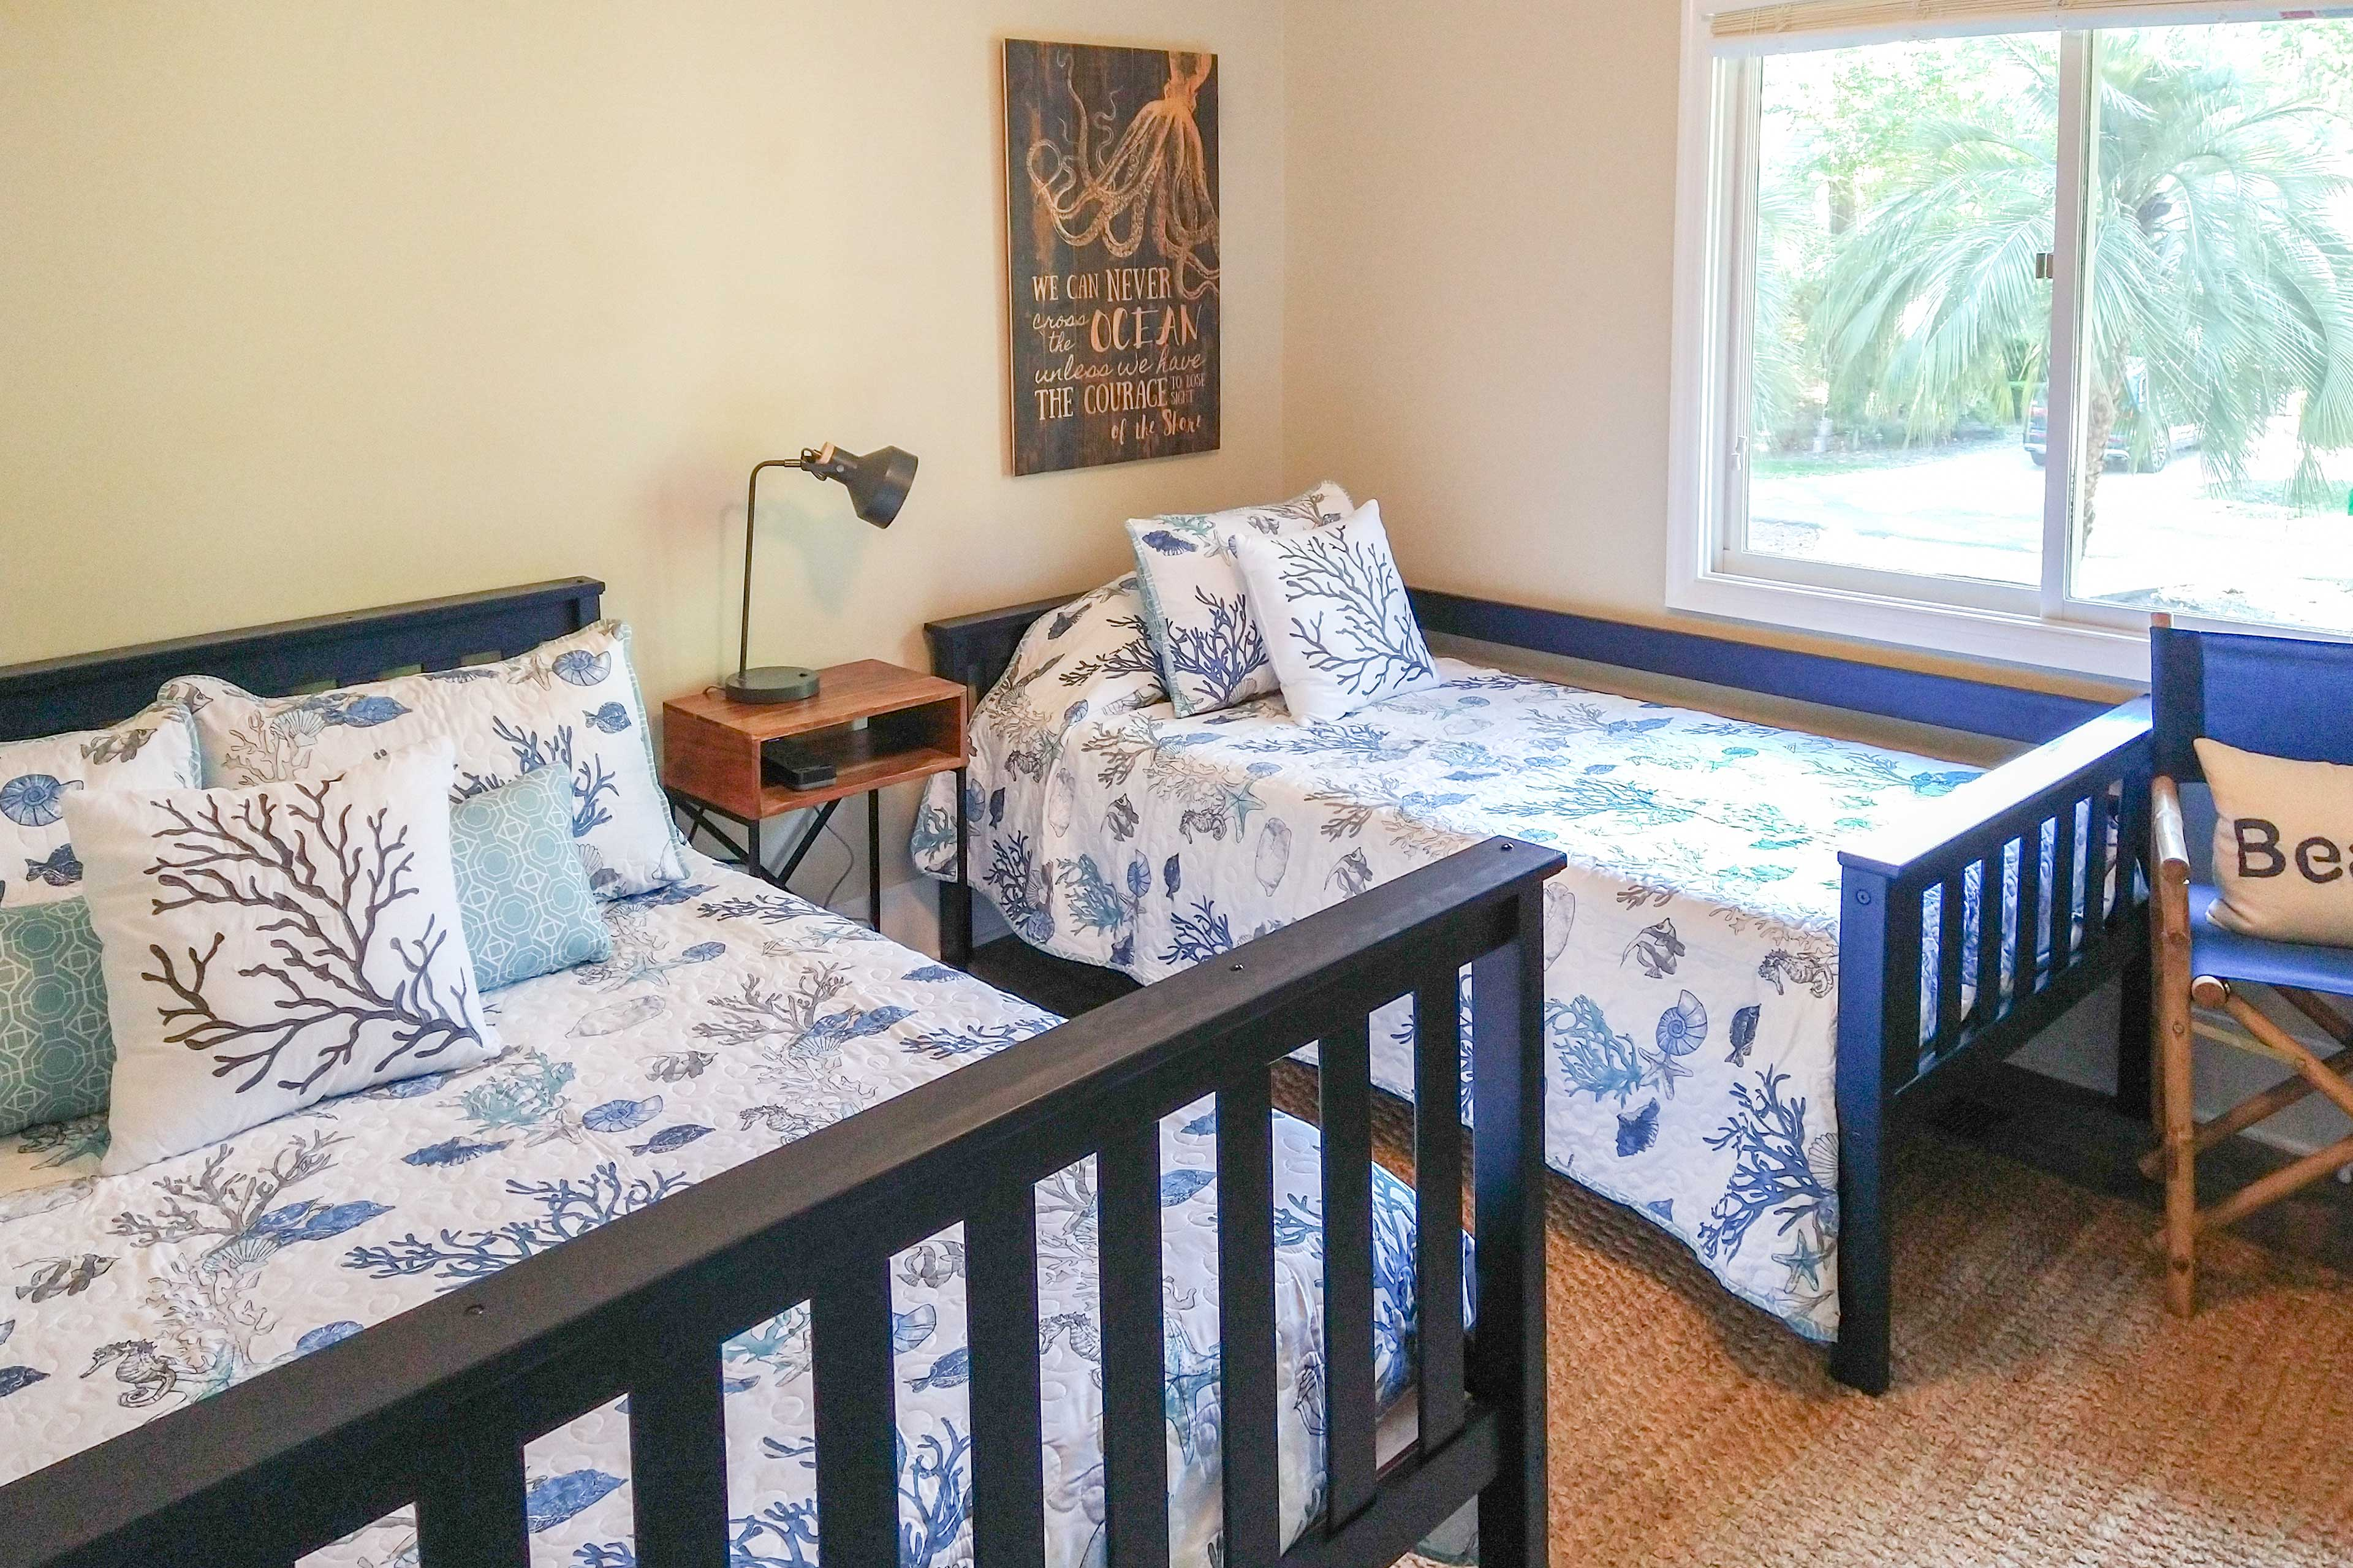 Bedroom 2 | Full Bed | Twin Bed | Linens Provided